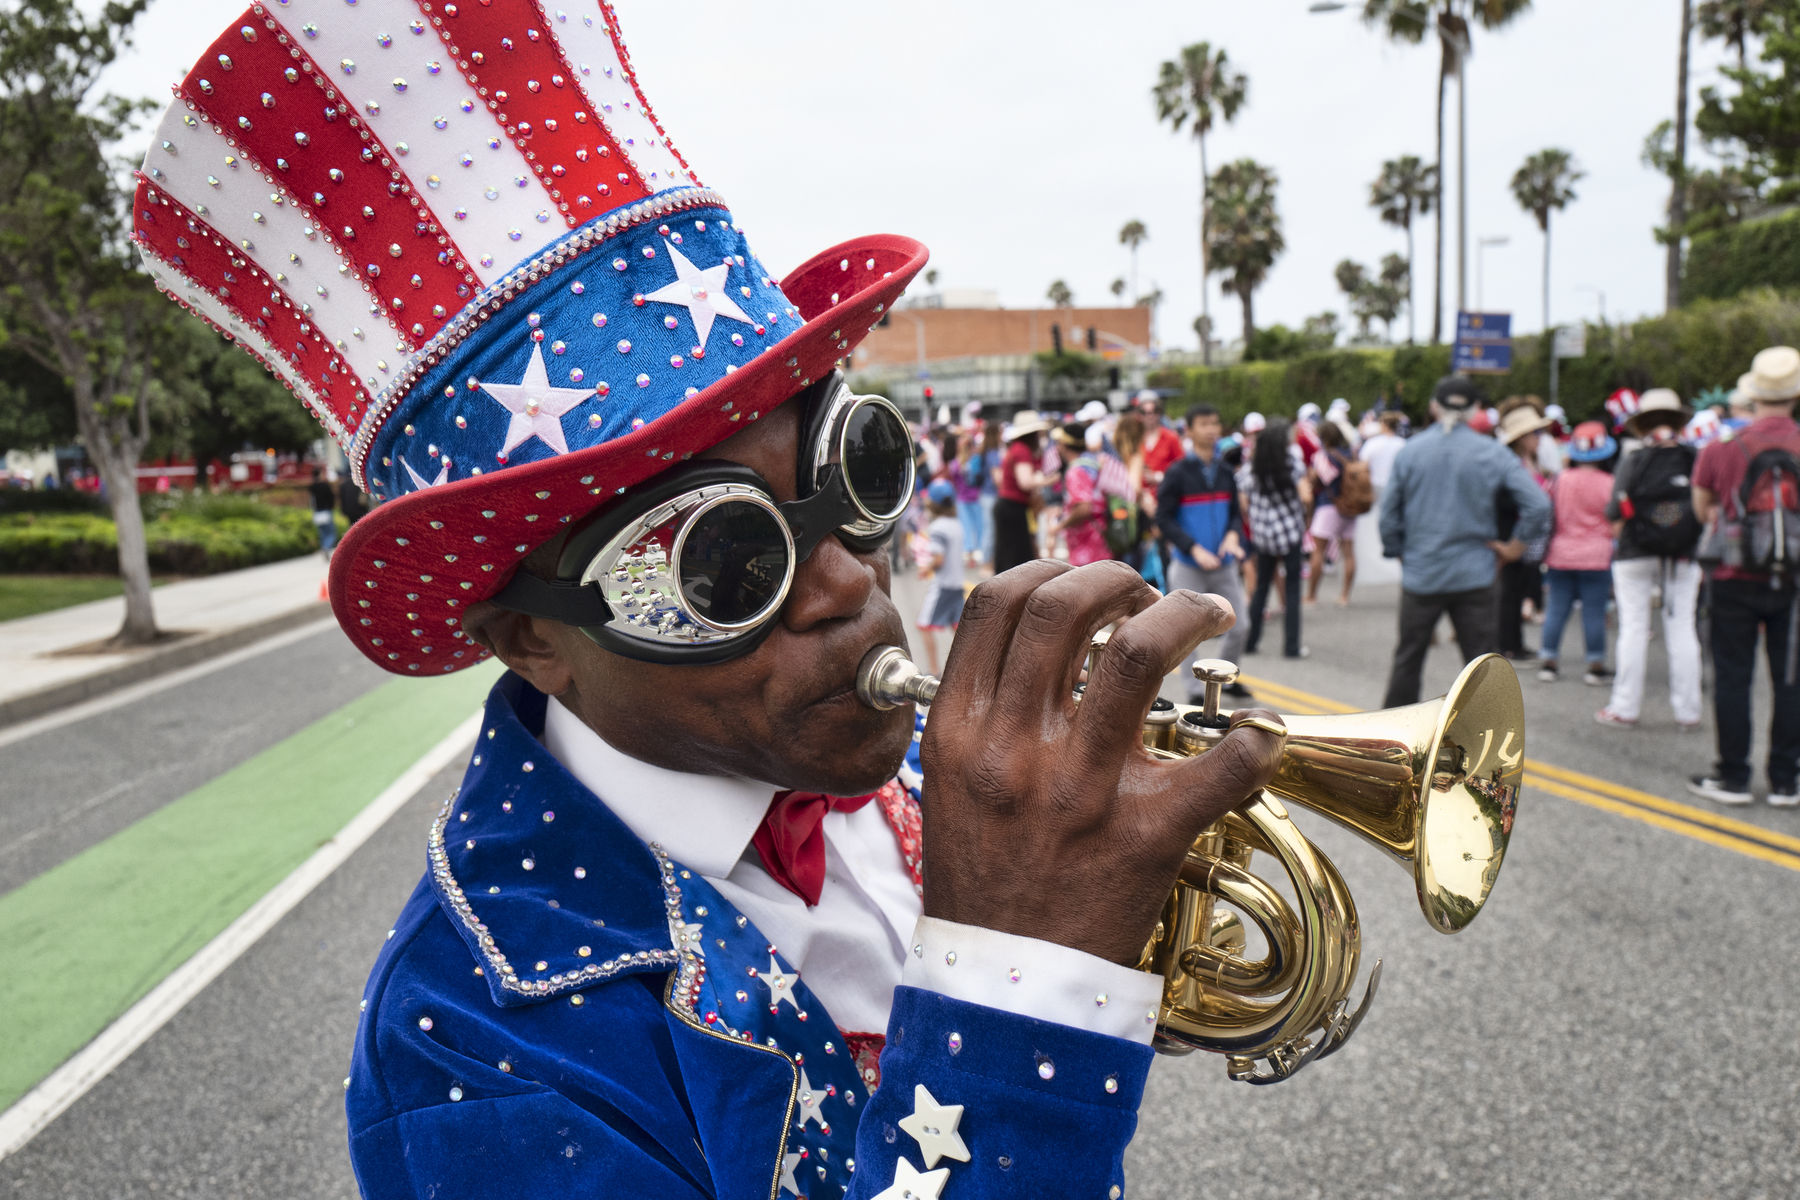 A trumpeter who went only by the name Lenny plays a tune during the Santa Monica Fourth of July parade Thursday, July 4, 2019 in Santa Monica, Calif. (AP Photo/Richard Vogel)